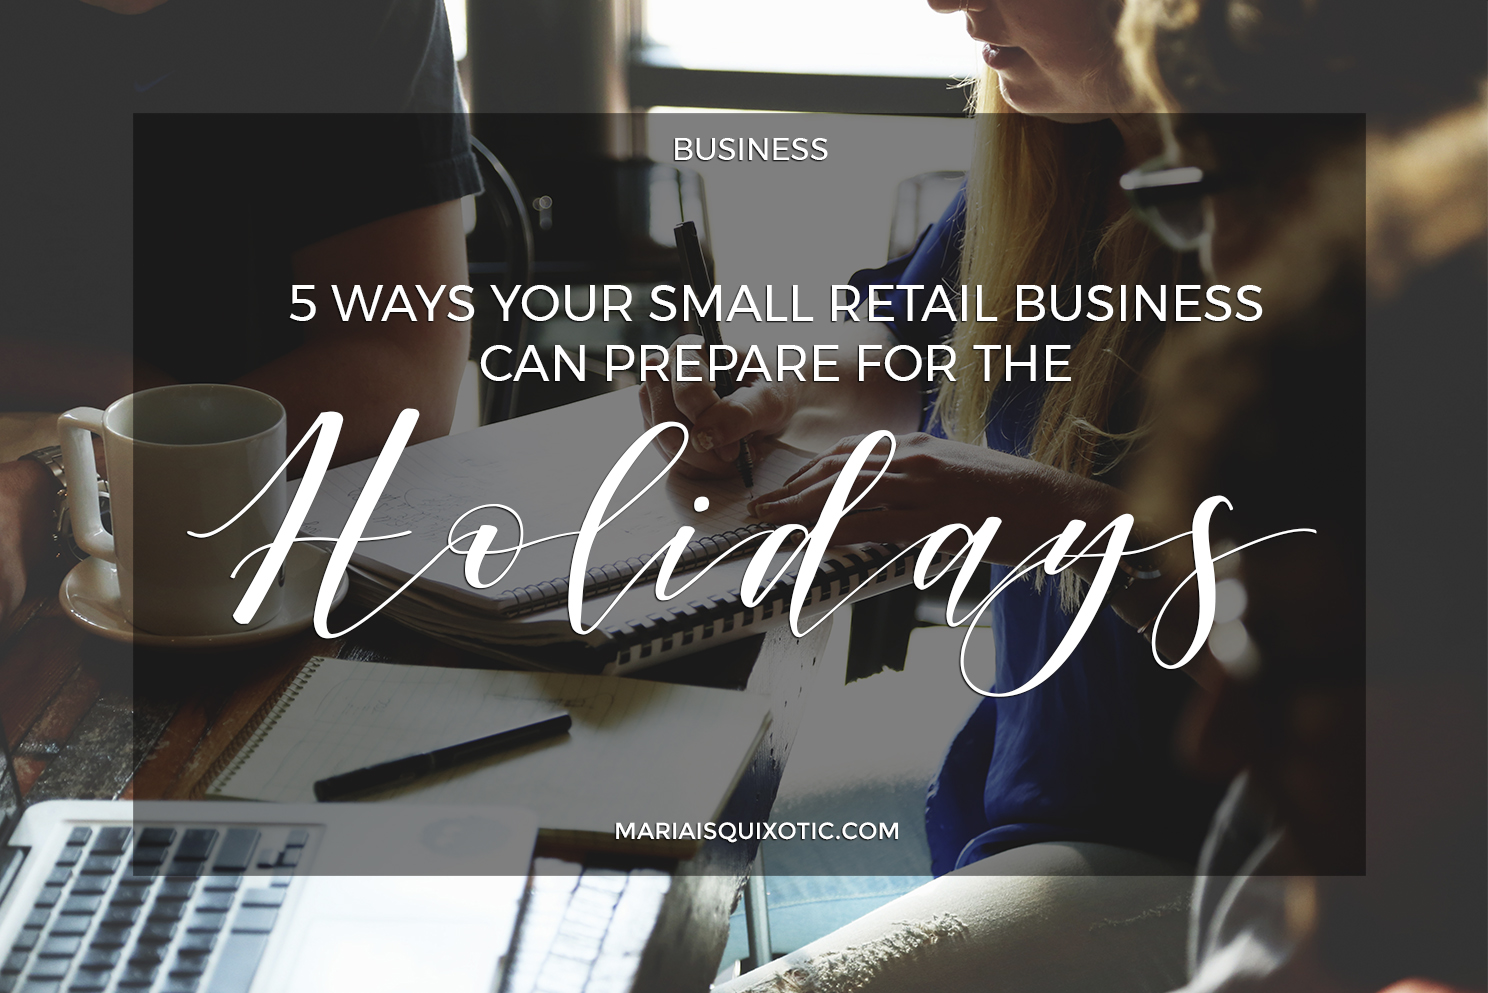 5 Ways Your Small Retail Business Can Prepare for the Holidays